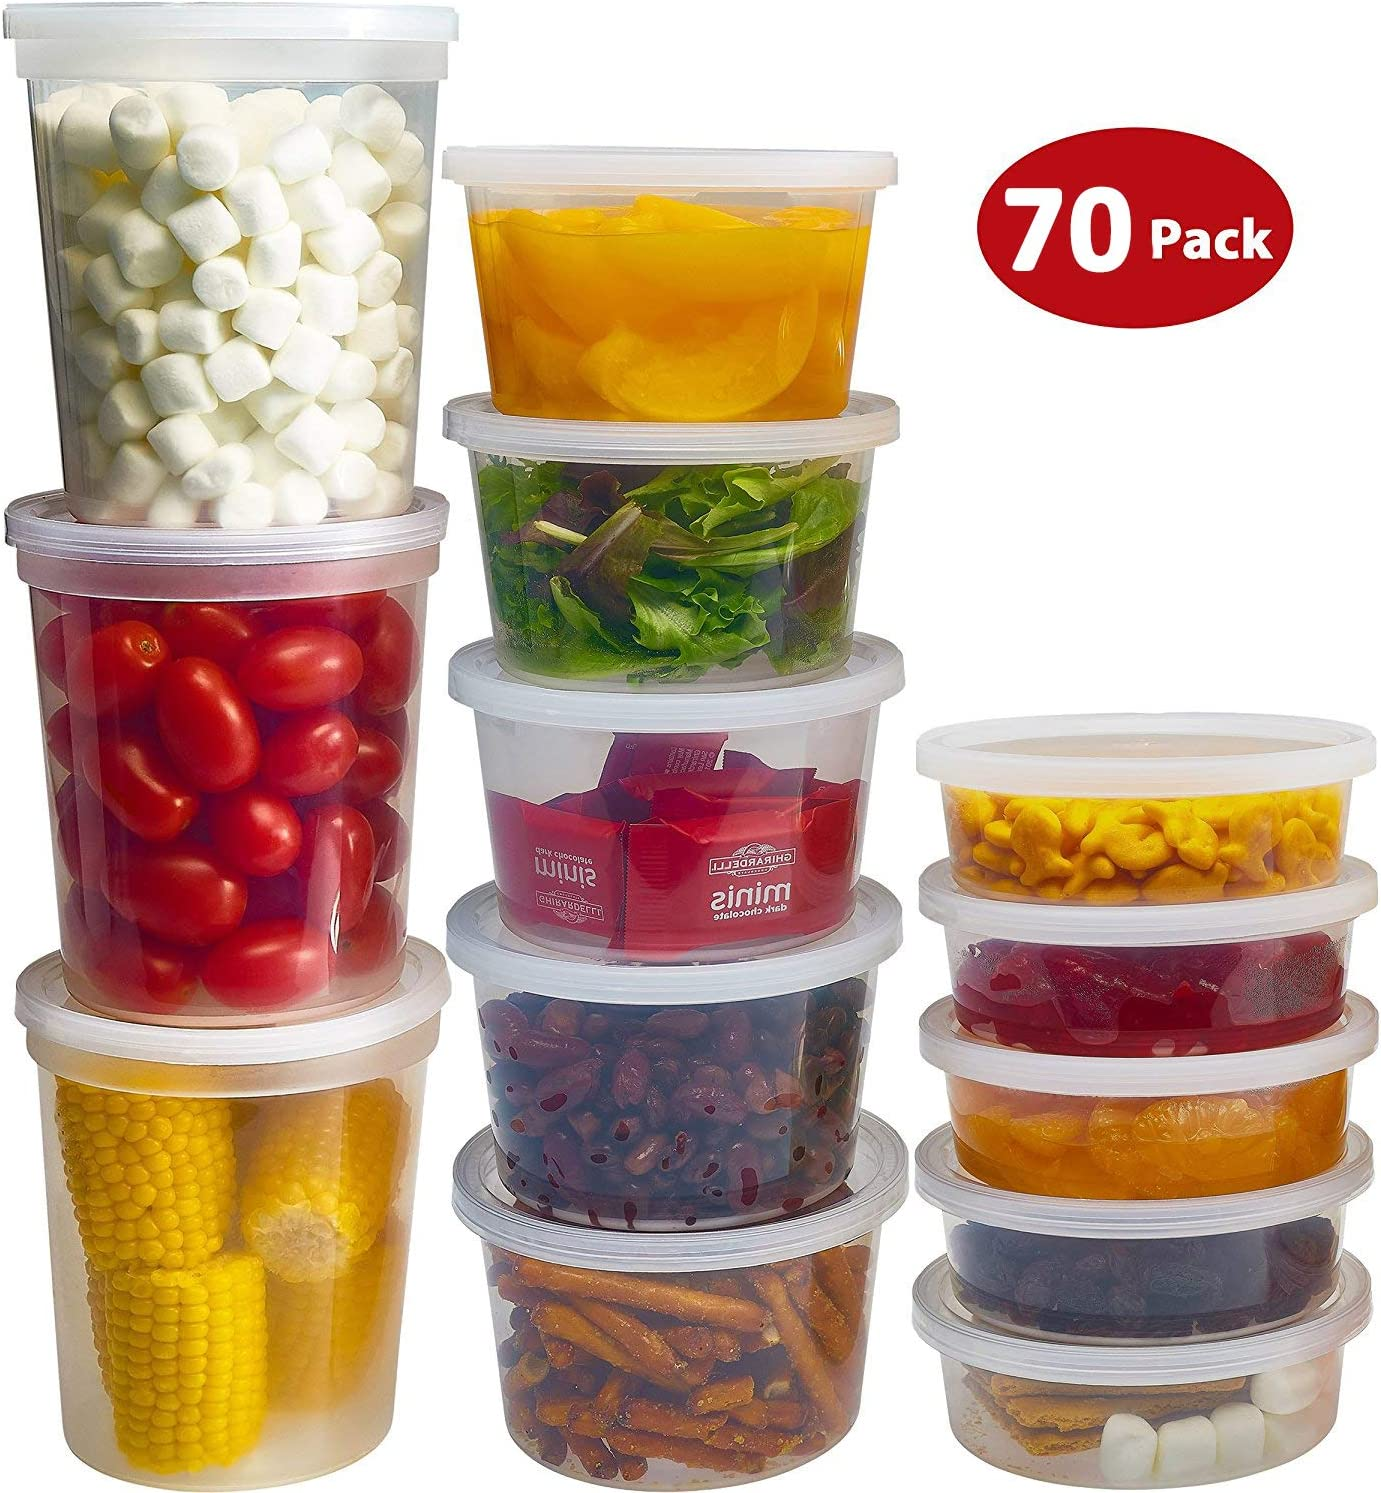 DuraHome Food Storage Containers with Lids 8oz, 16oz, 32oz Freezer Deli Cups Combo Pack, 70 Sets BPA-Free Leakproof Round Clear Takeout Container Meal Prep Microwavable (70 Sets - Mixed sizes)